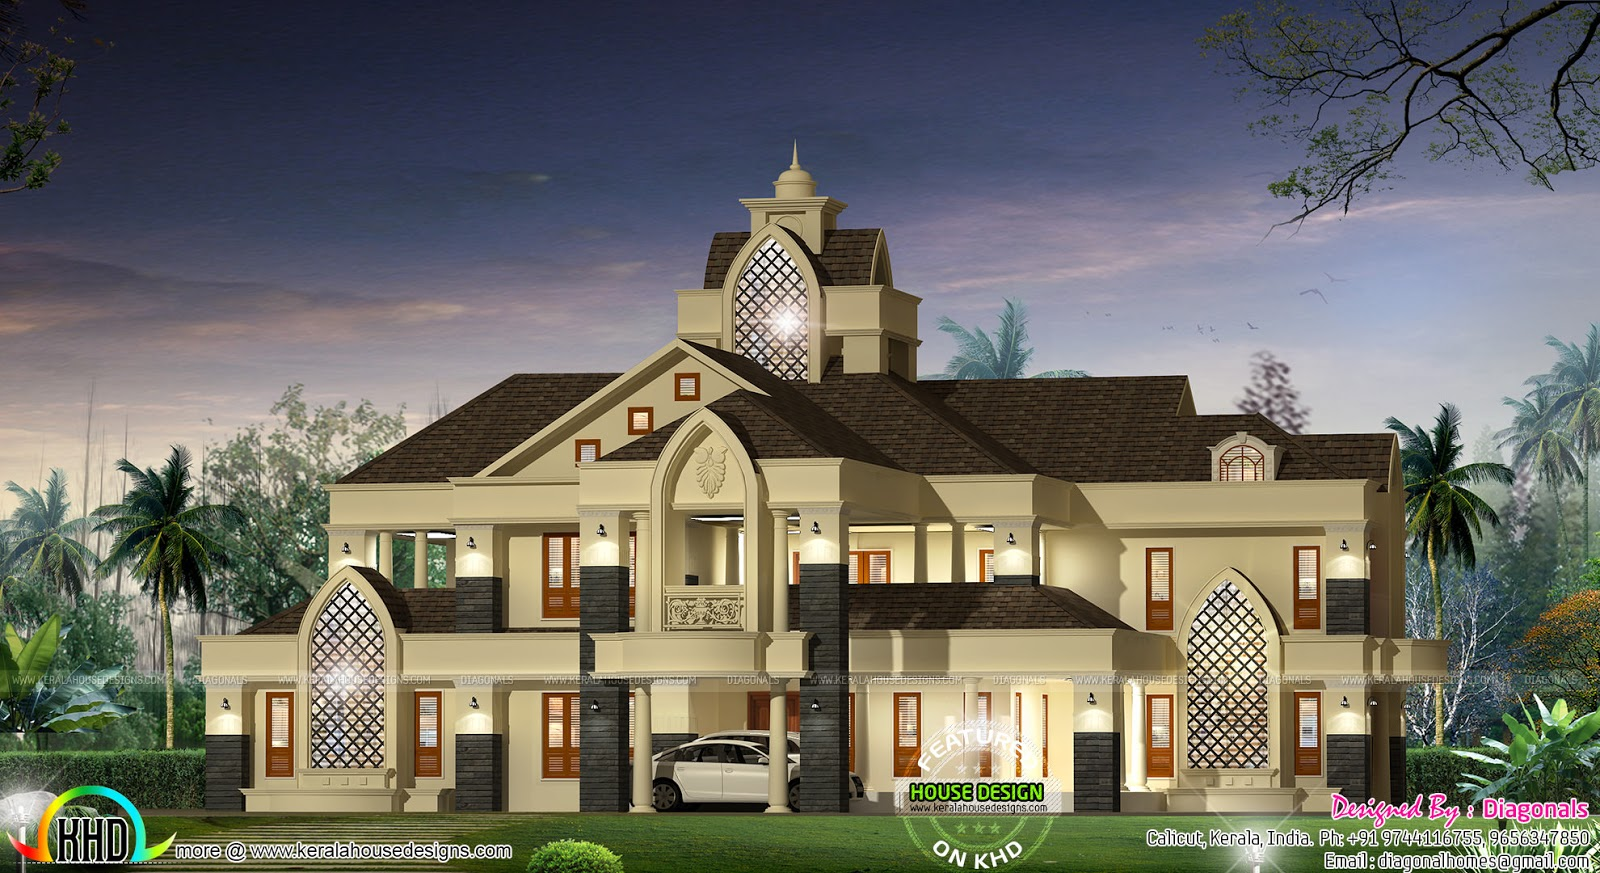 Colonial type modern luxury home kerala home design and floor plans